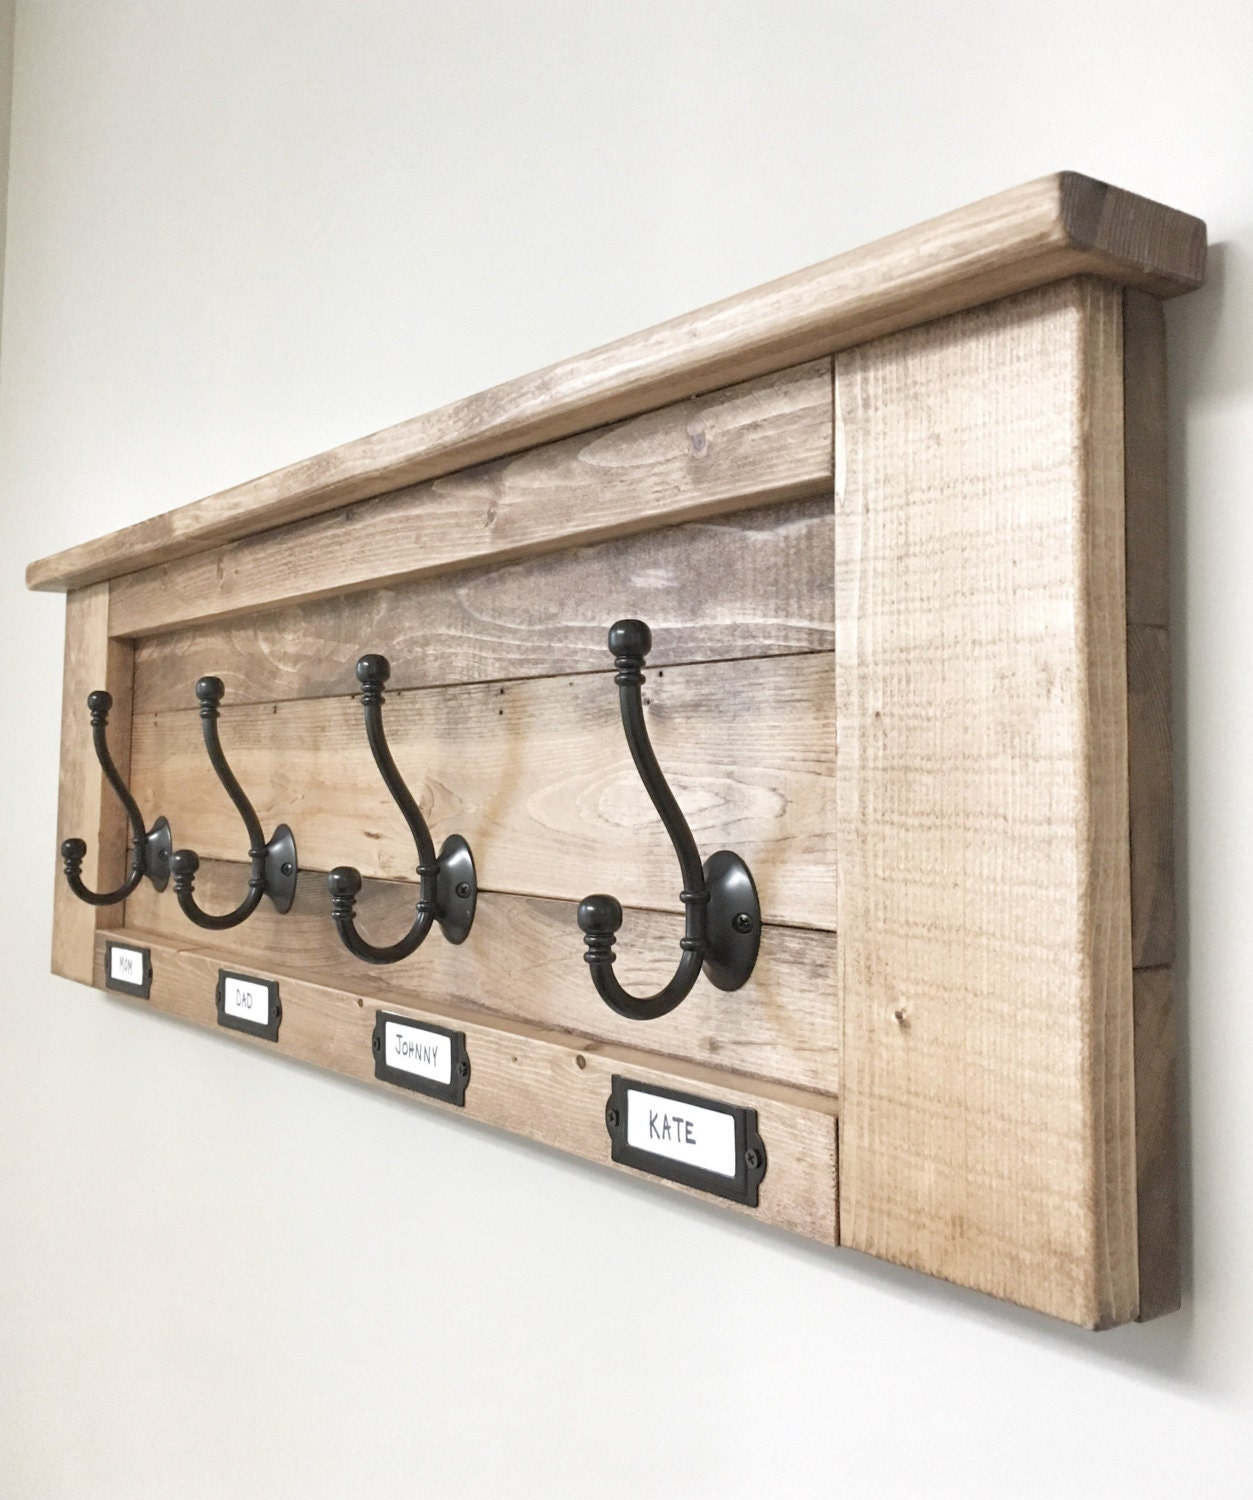 Wall Mounted Coat Rack With Shelf And Hooks Wooden Coat Rack Shelf